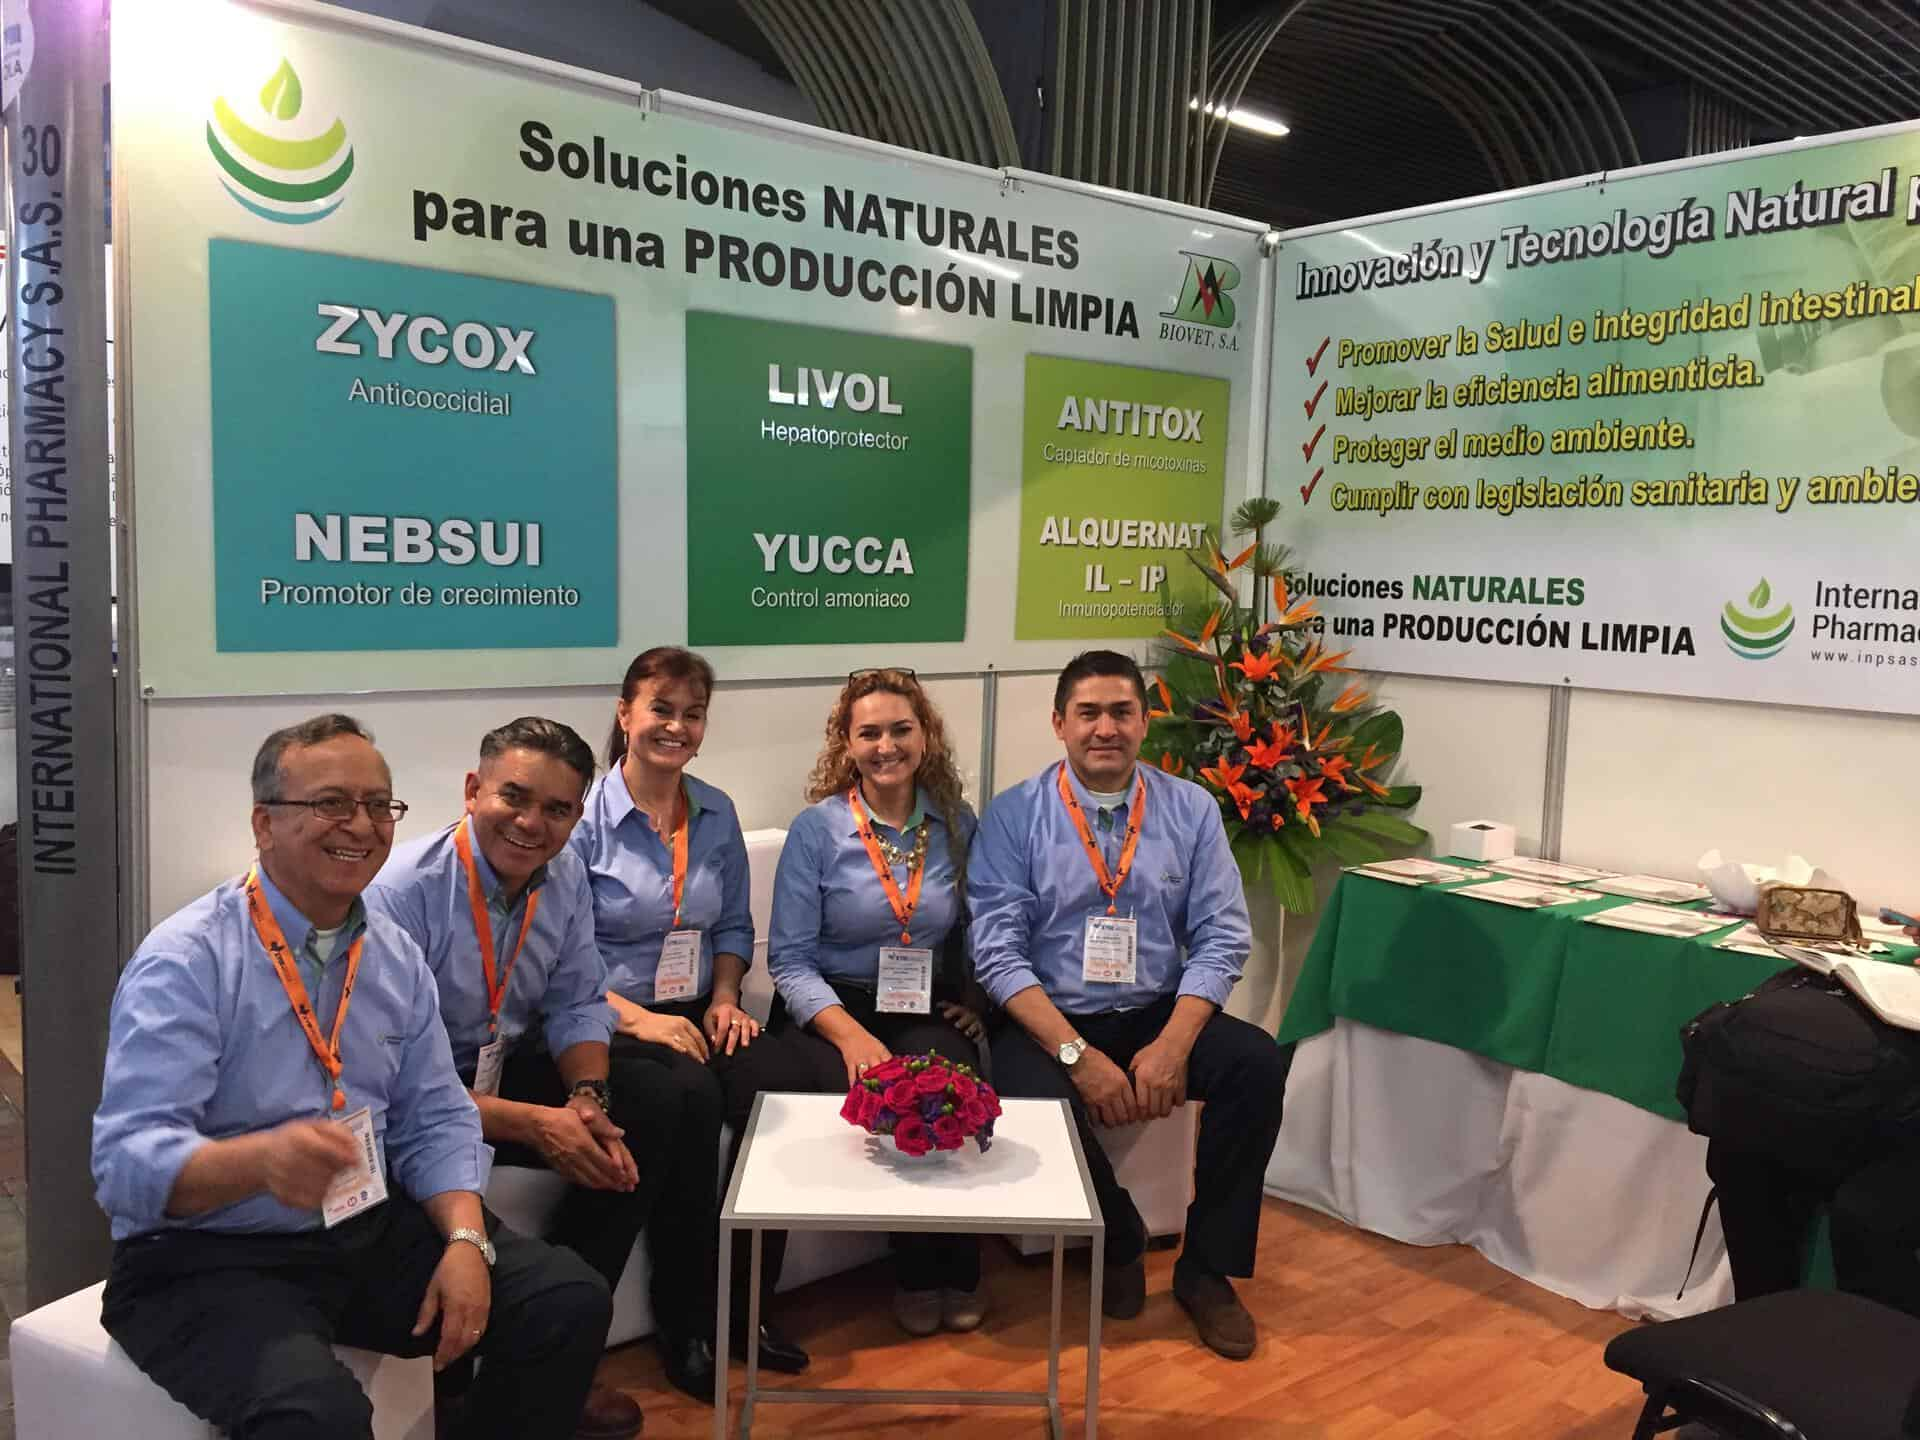 International Pharmacy SAS participates in the XVIII National Poultry Congress of Colombia